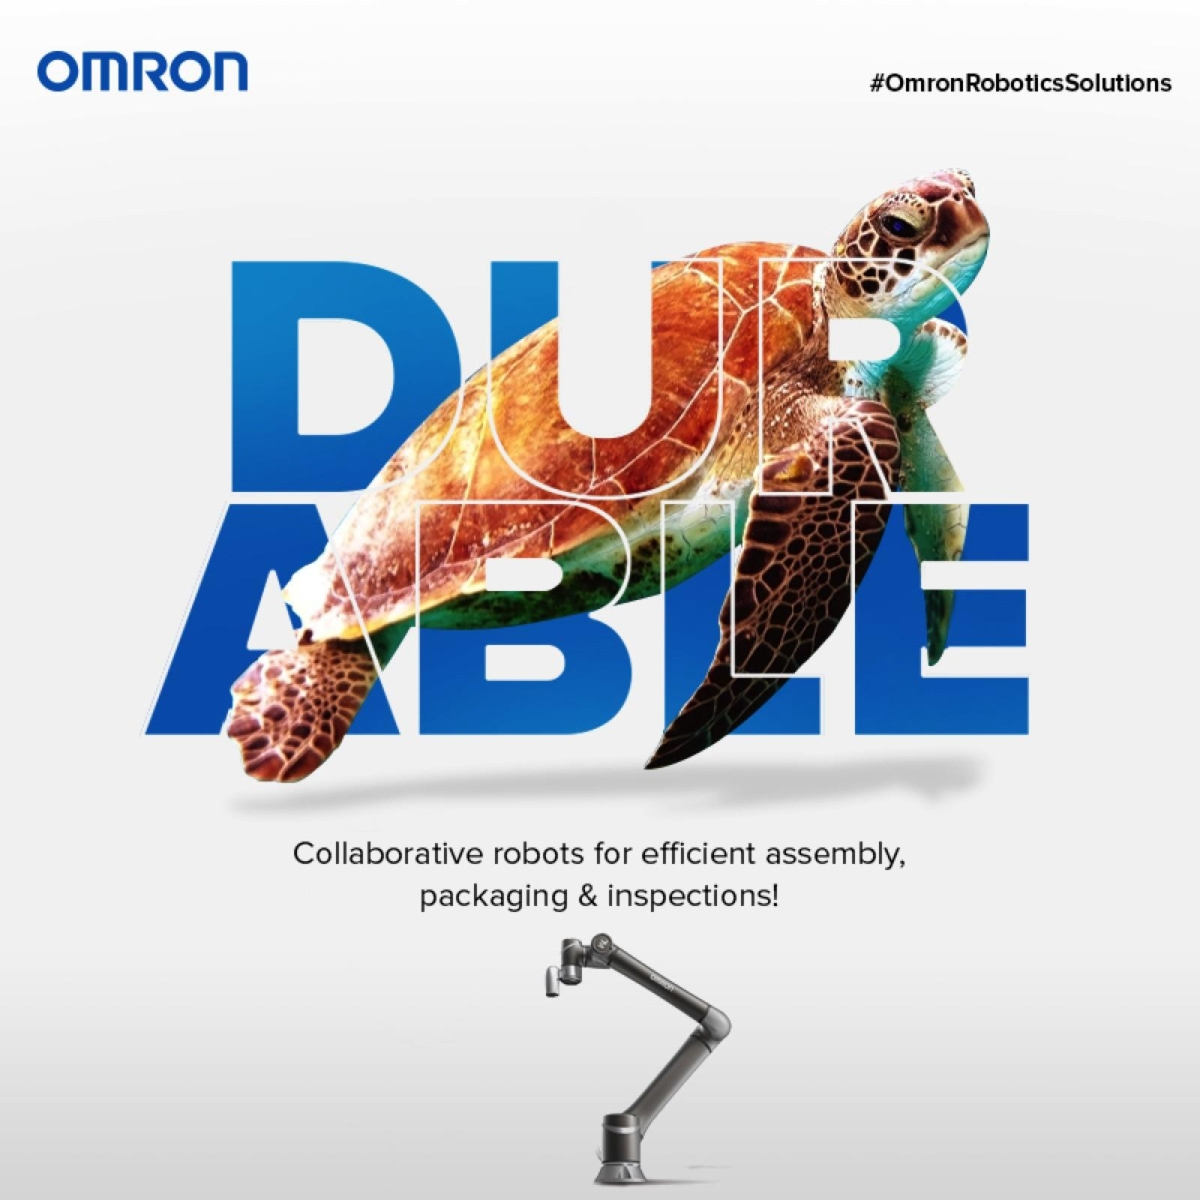 Omron robotics solutions